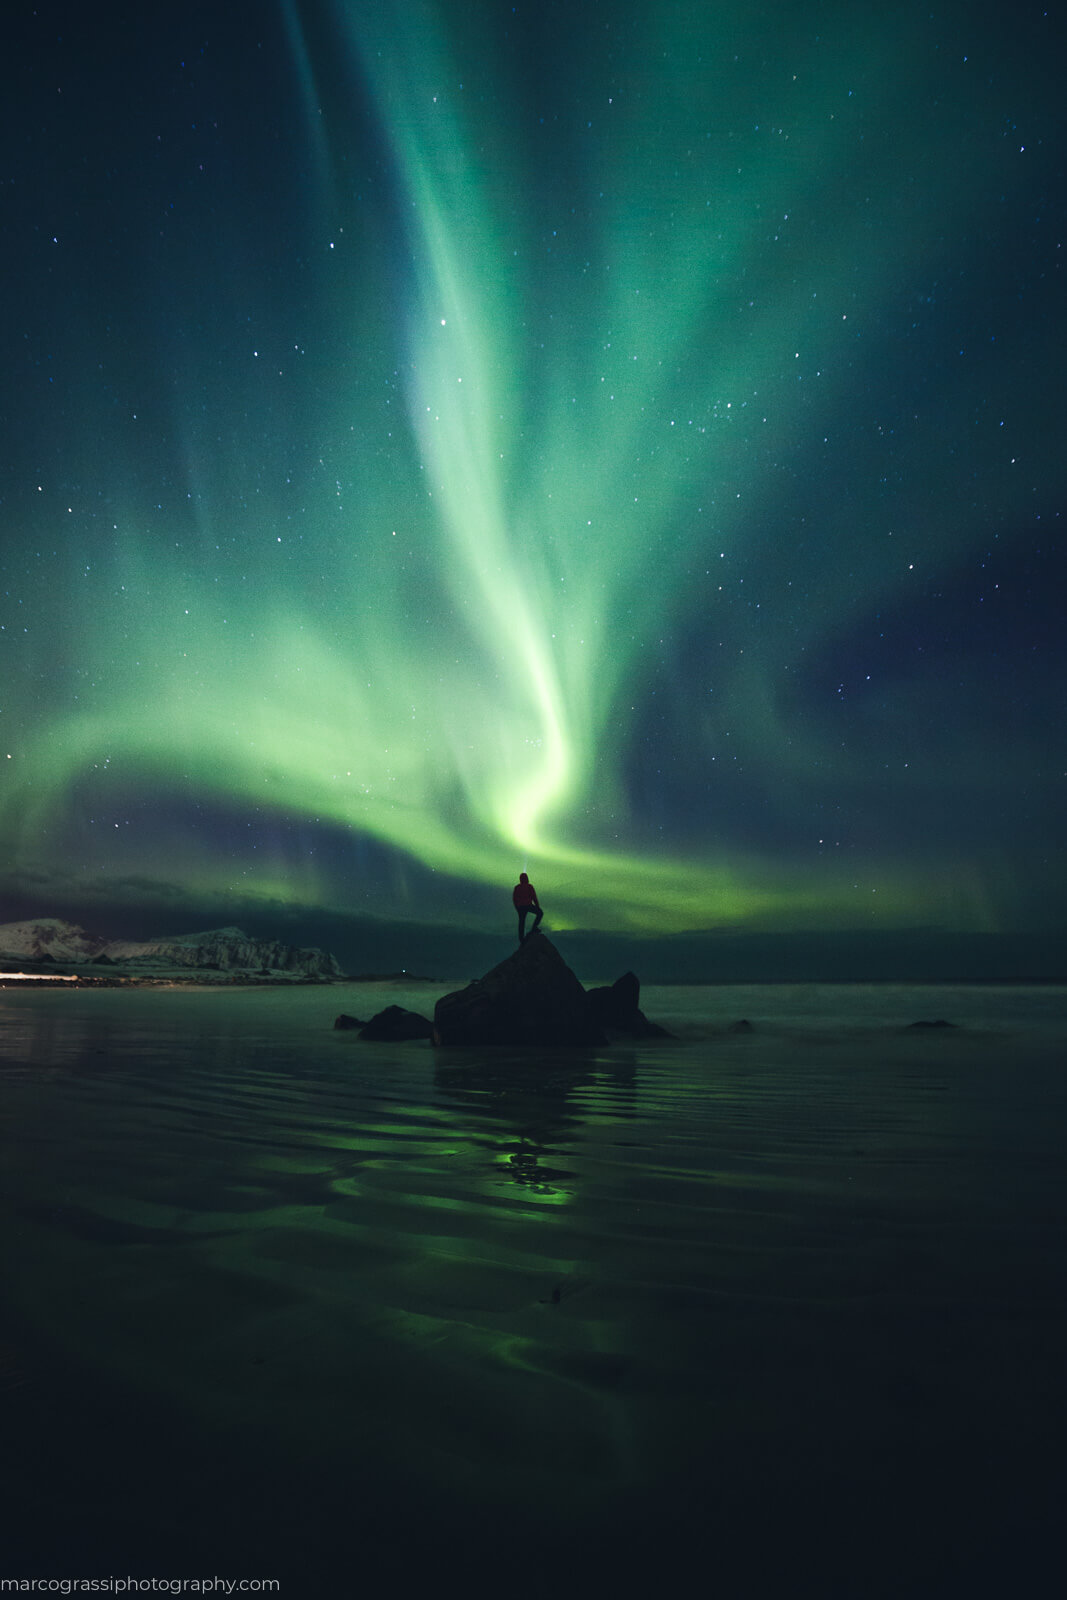 Staring at the Northern Lights in Lofoten Islands, Norway